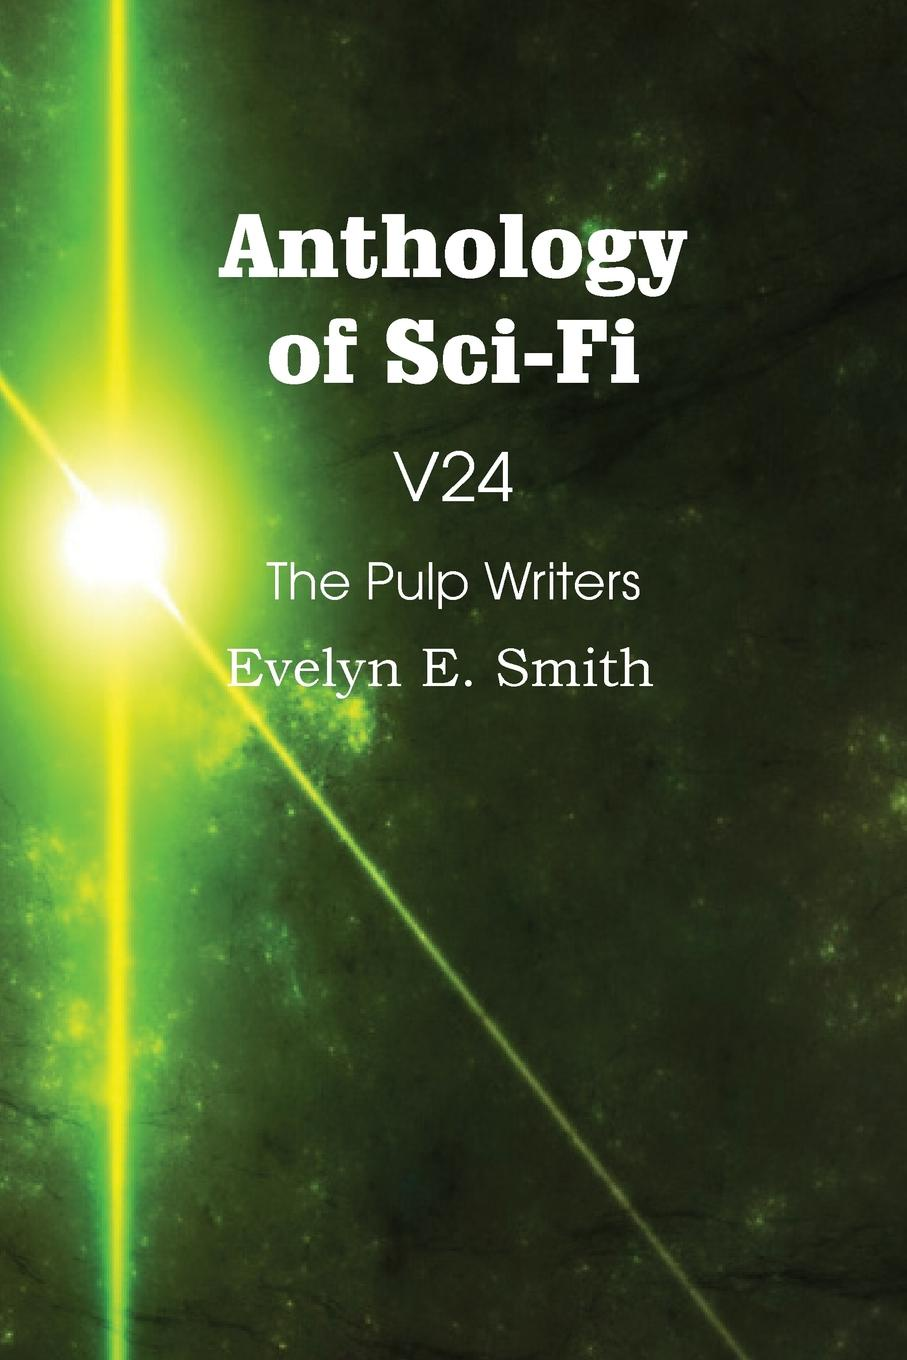 цена Evelyn E. Smith Anthology of Sci-Fi V24, the Pulp Writers - Evelyn E. Smith в интернет-магазинах